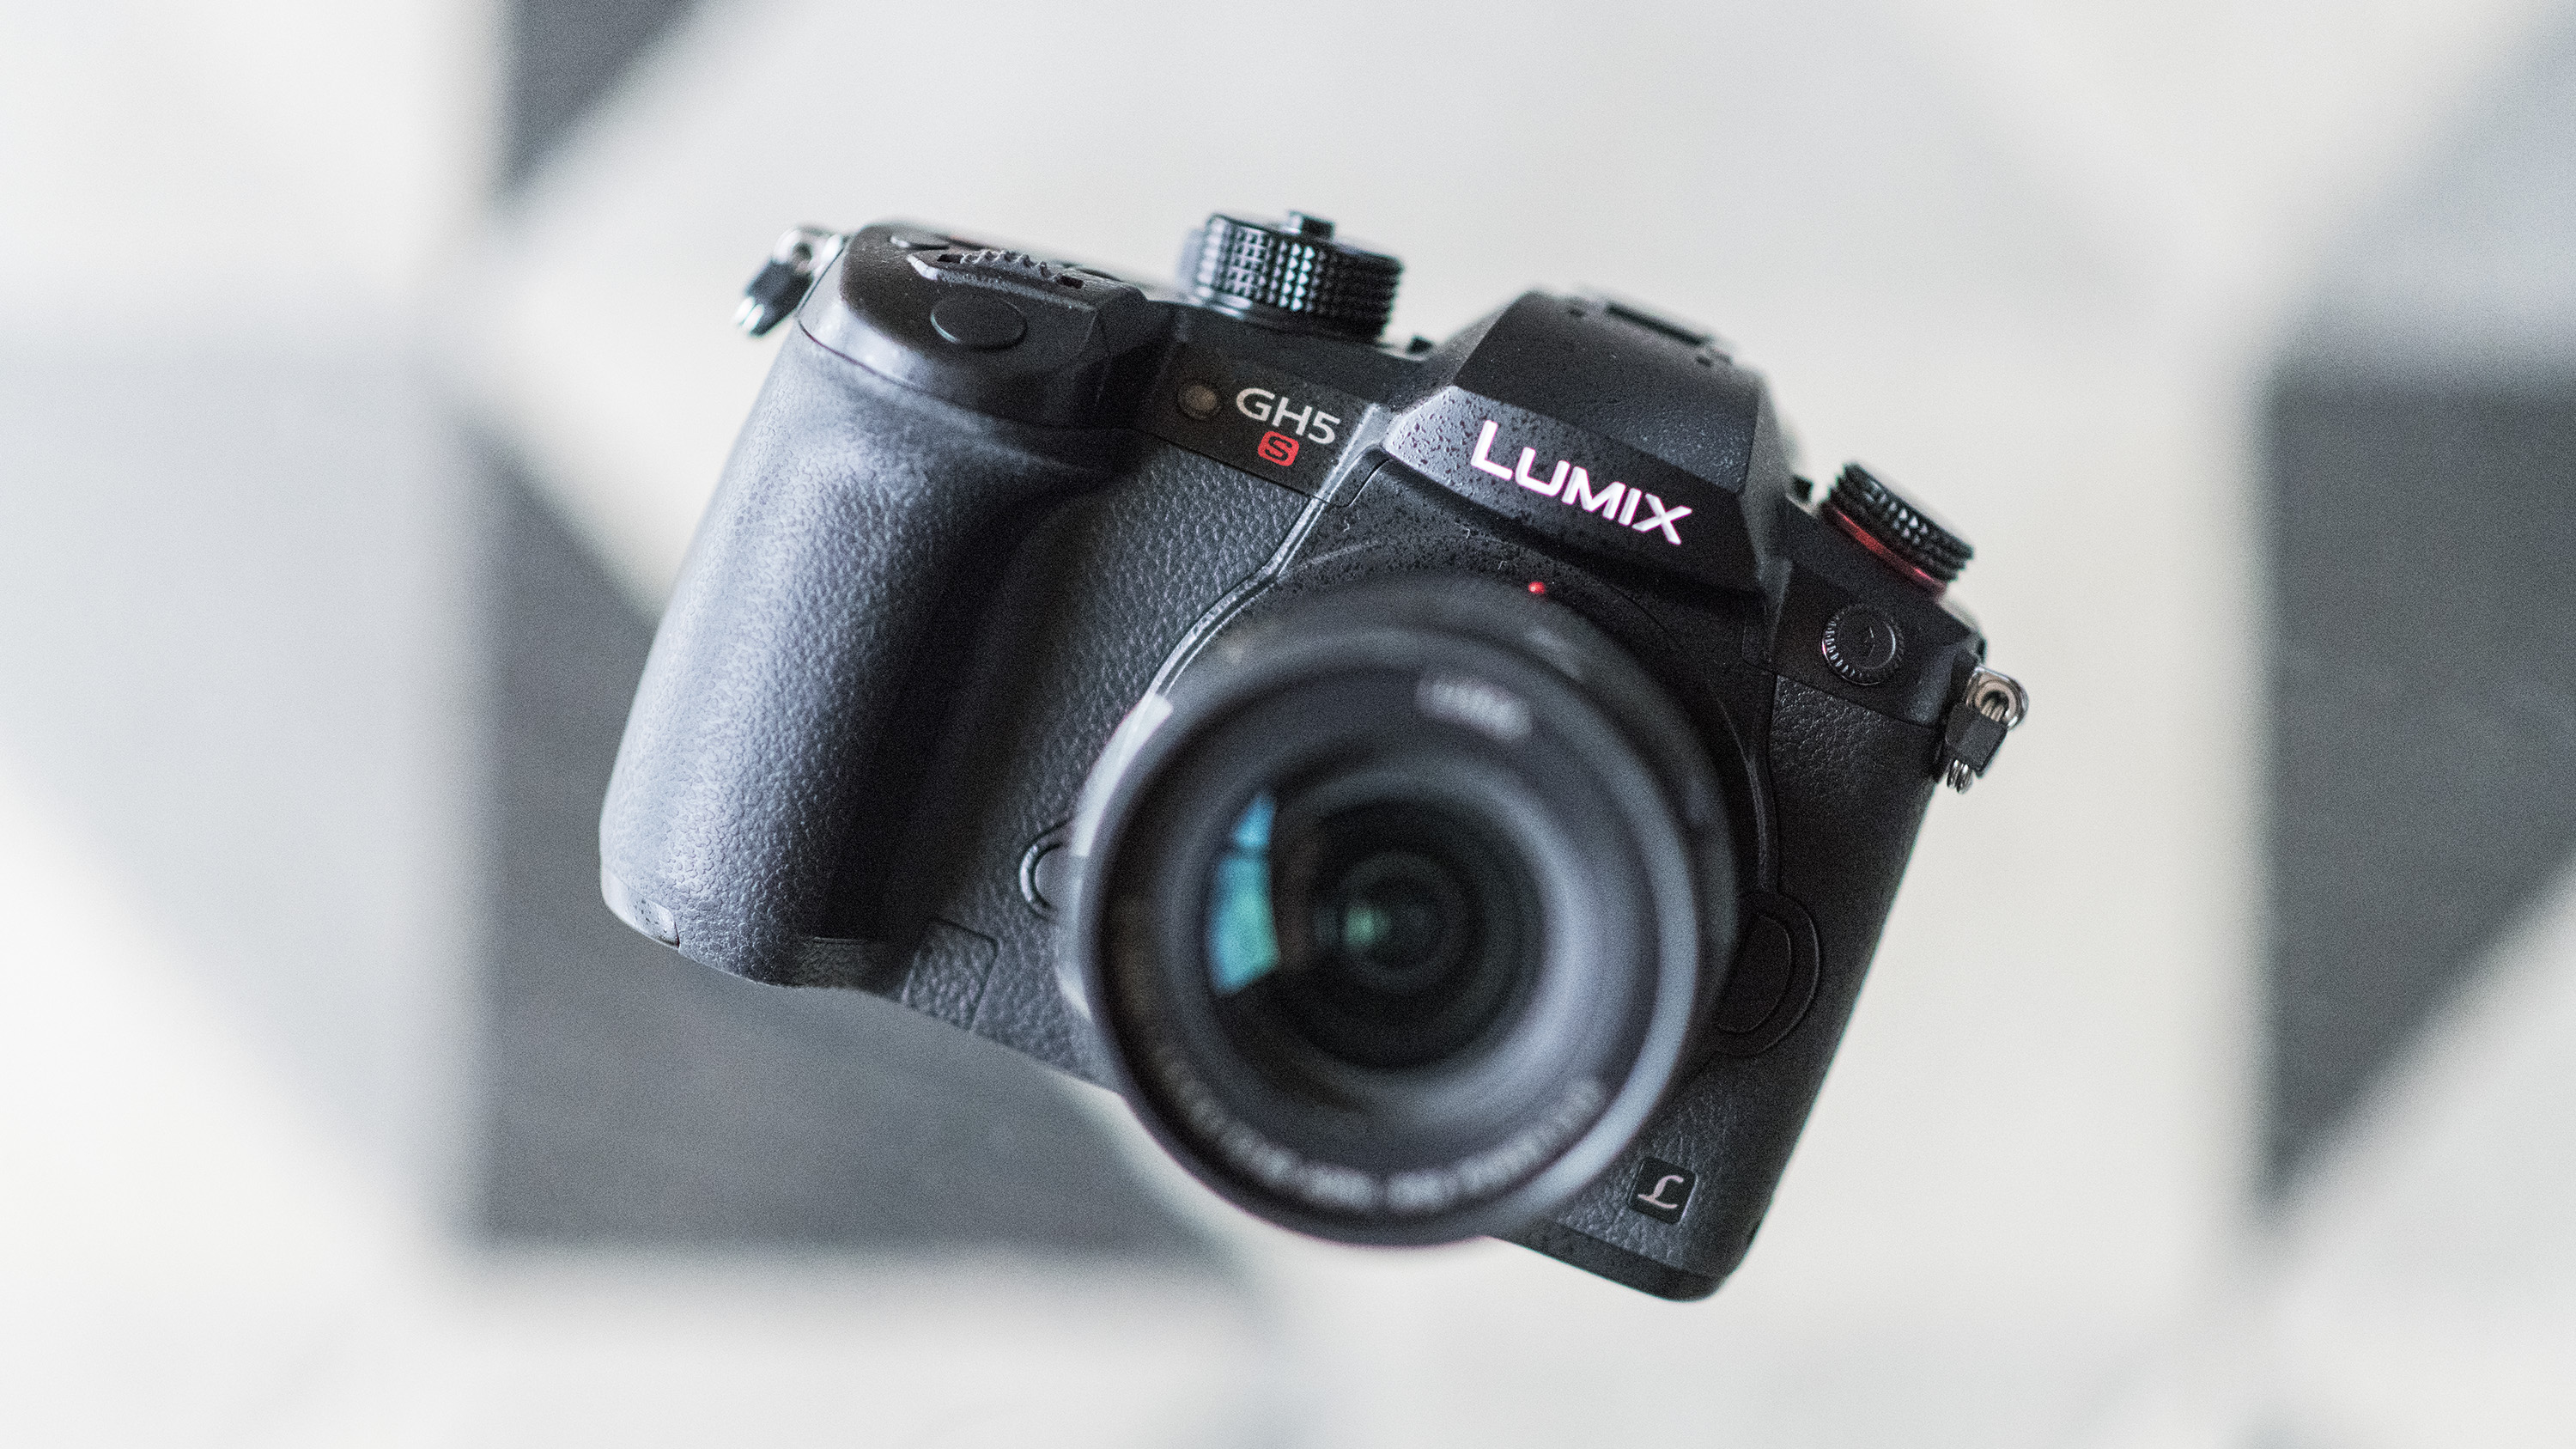 Best camera: Panasonic Lumix GH5S